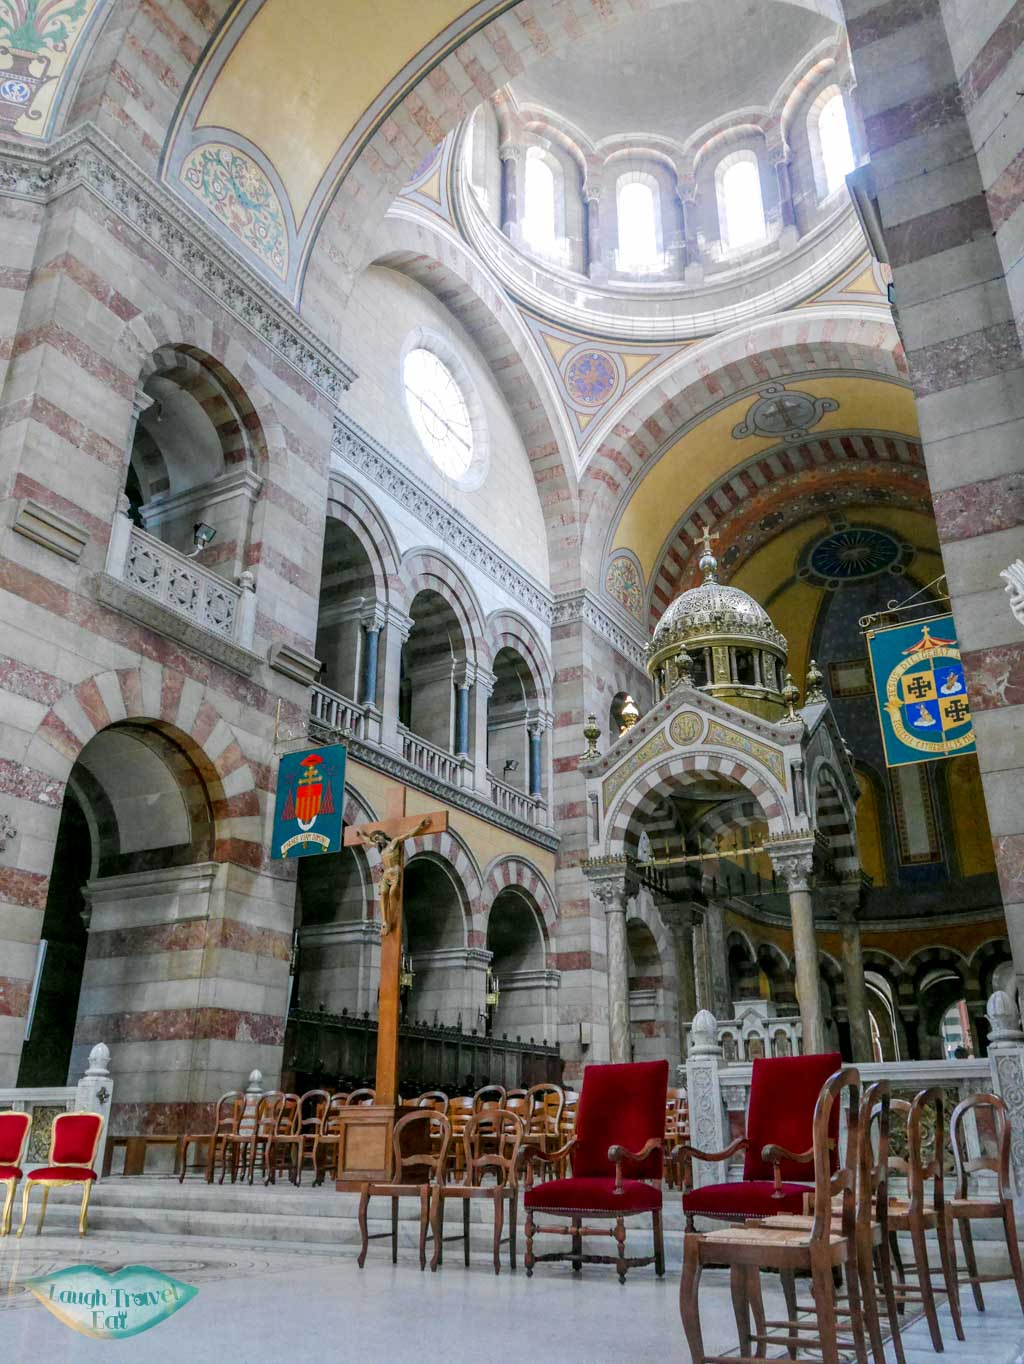 inside marseille cathedral marseille south of france | Laugh Travel Eat